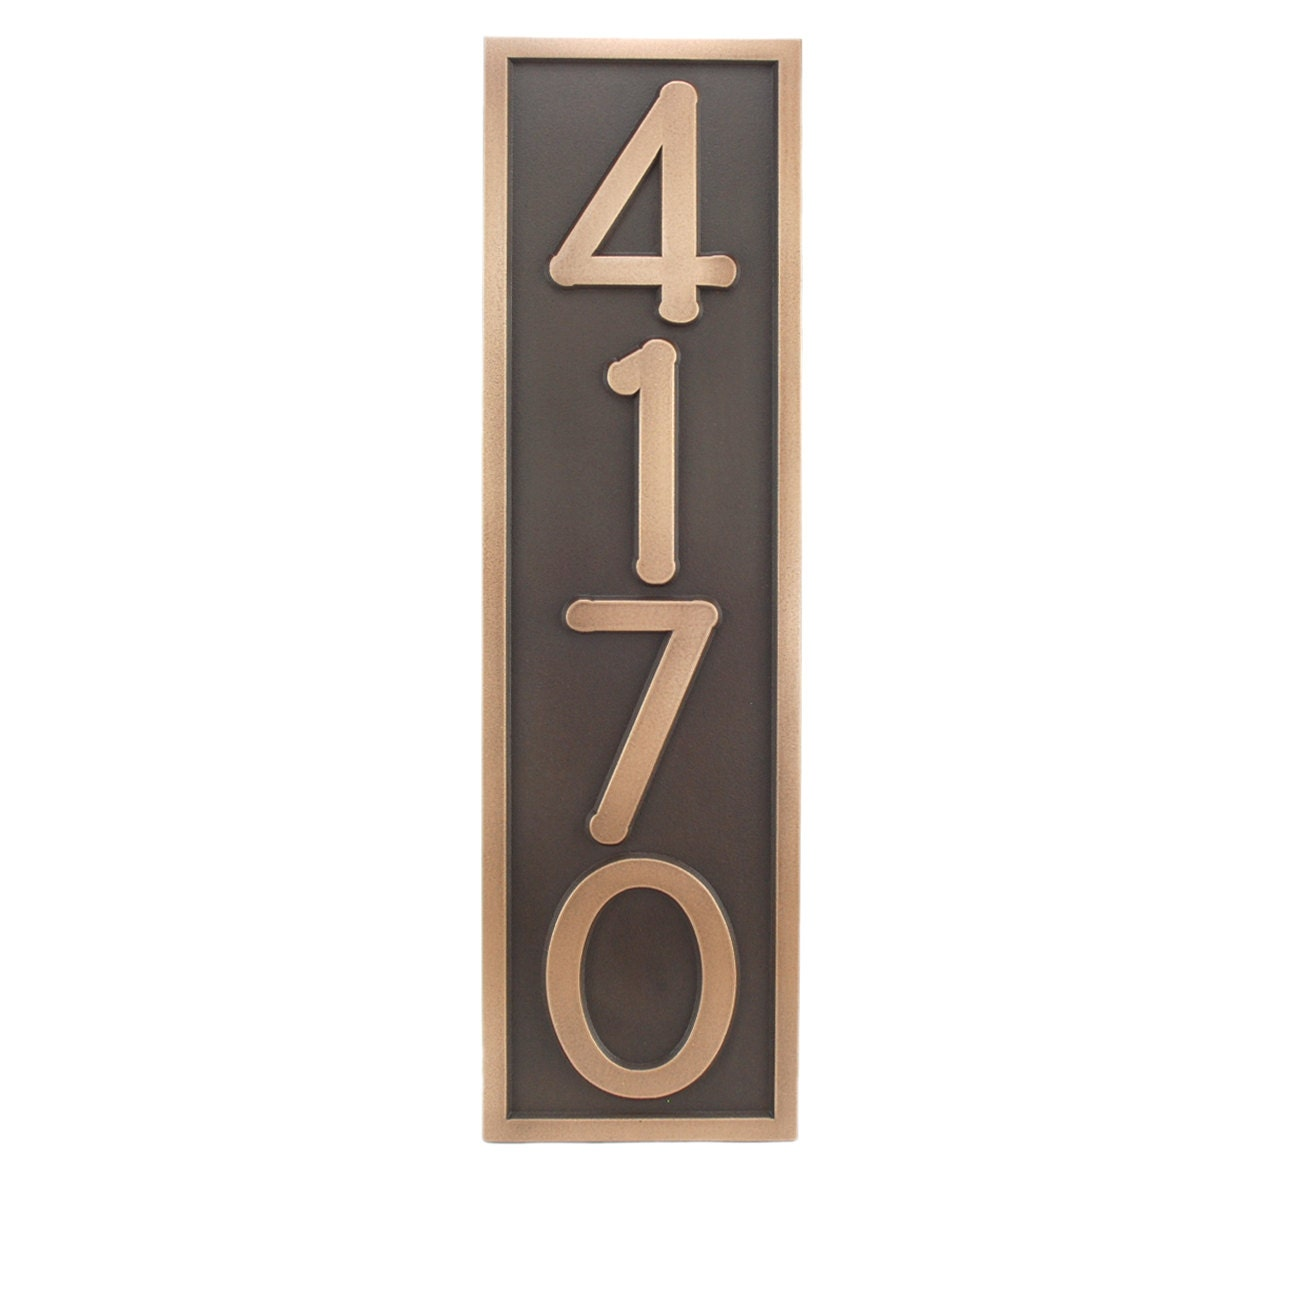 Craftsman bungalow arts and crafts 4 house numbers x for Bungalow house numbers